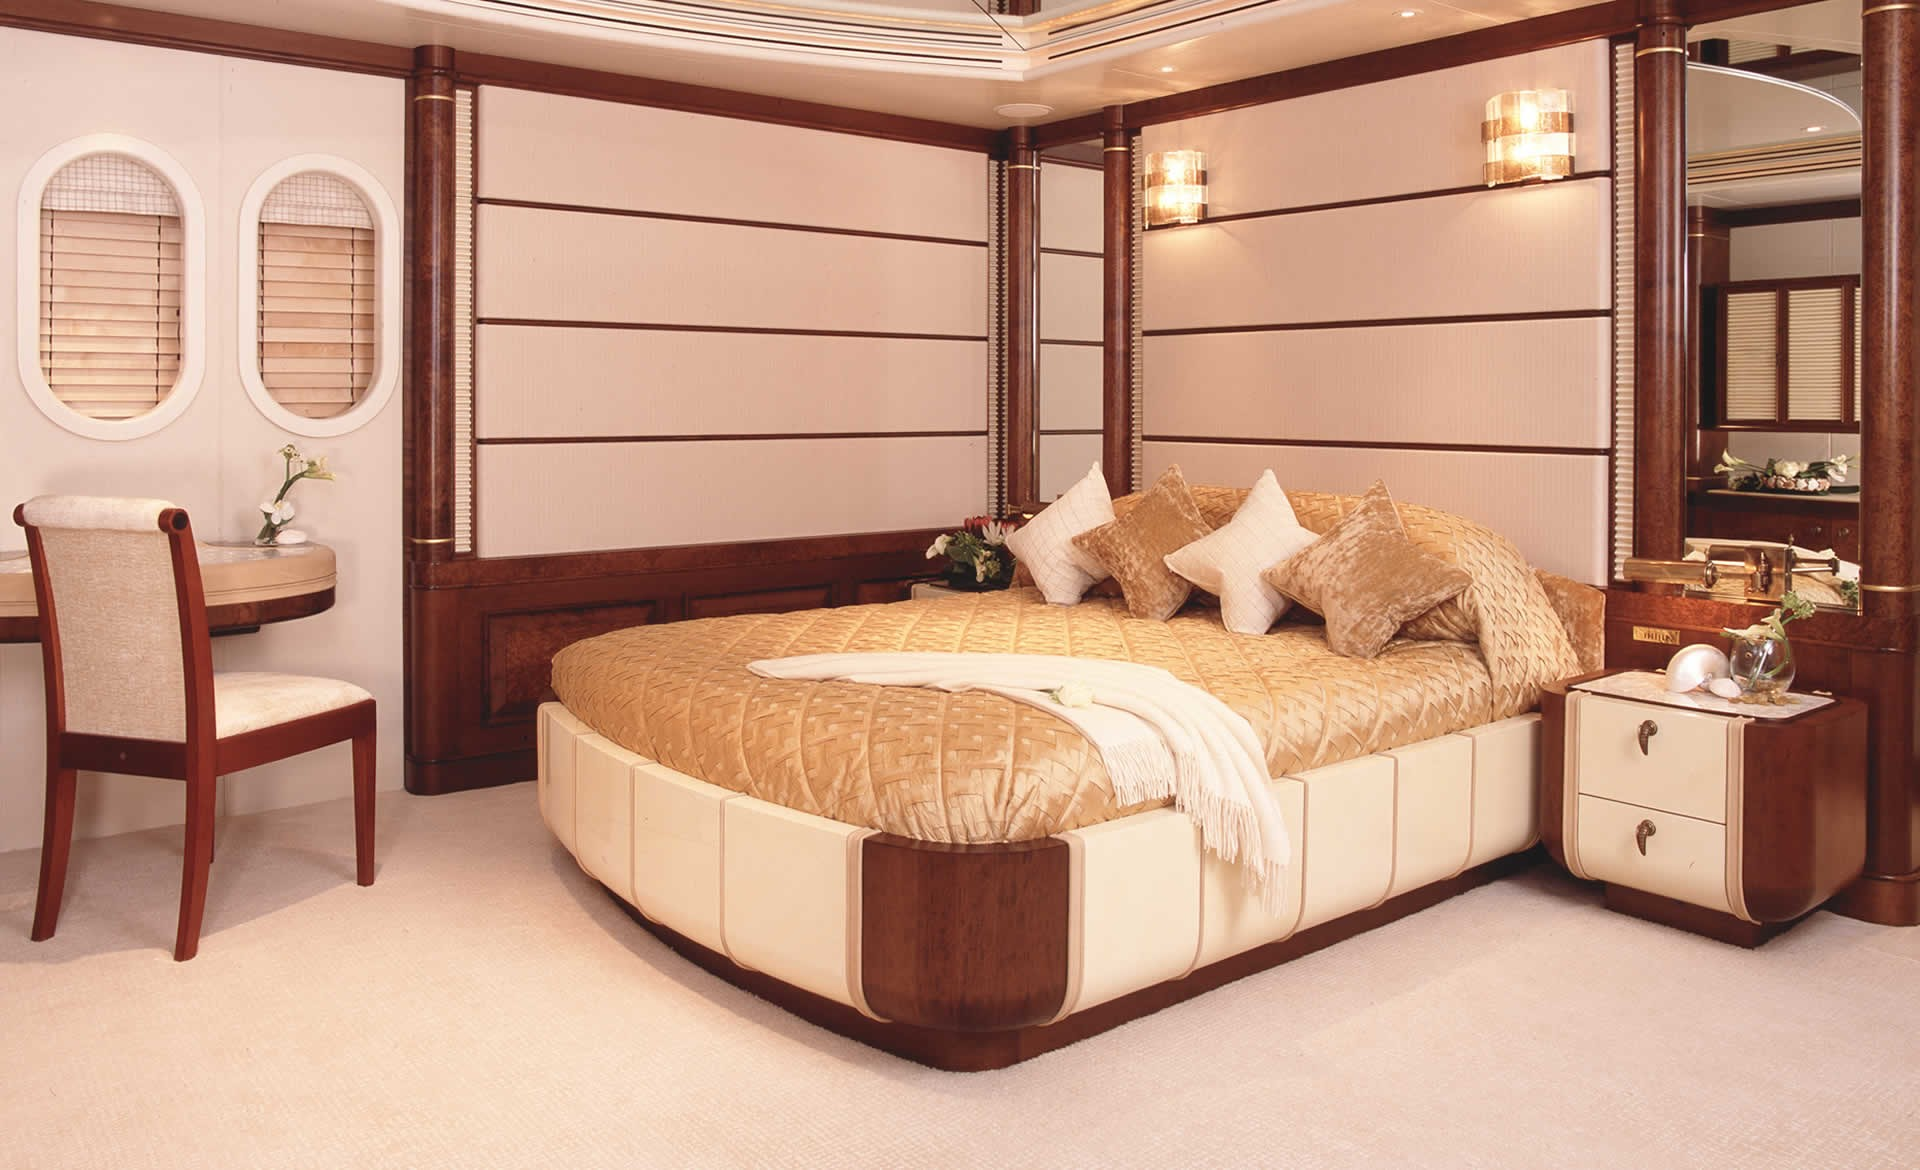 Bunk Berth Closed: Yacht CALYPSO's Lower Deck Cabin Photograph